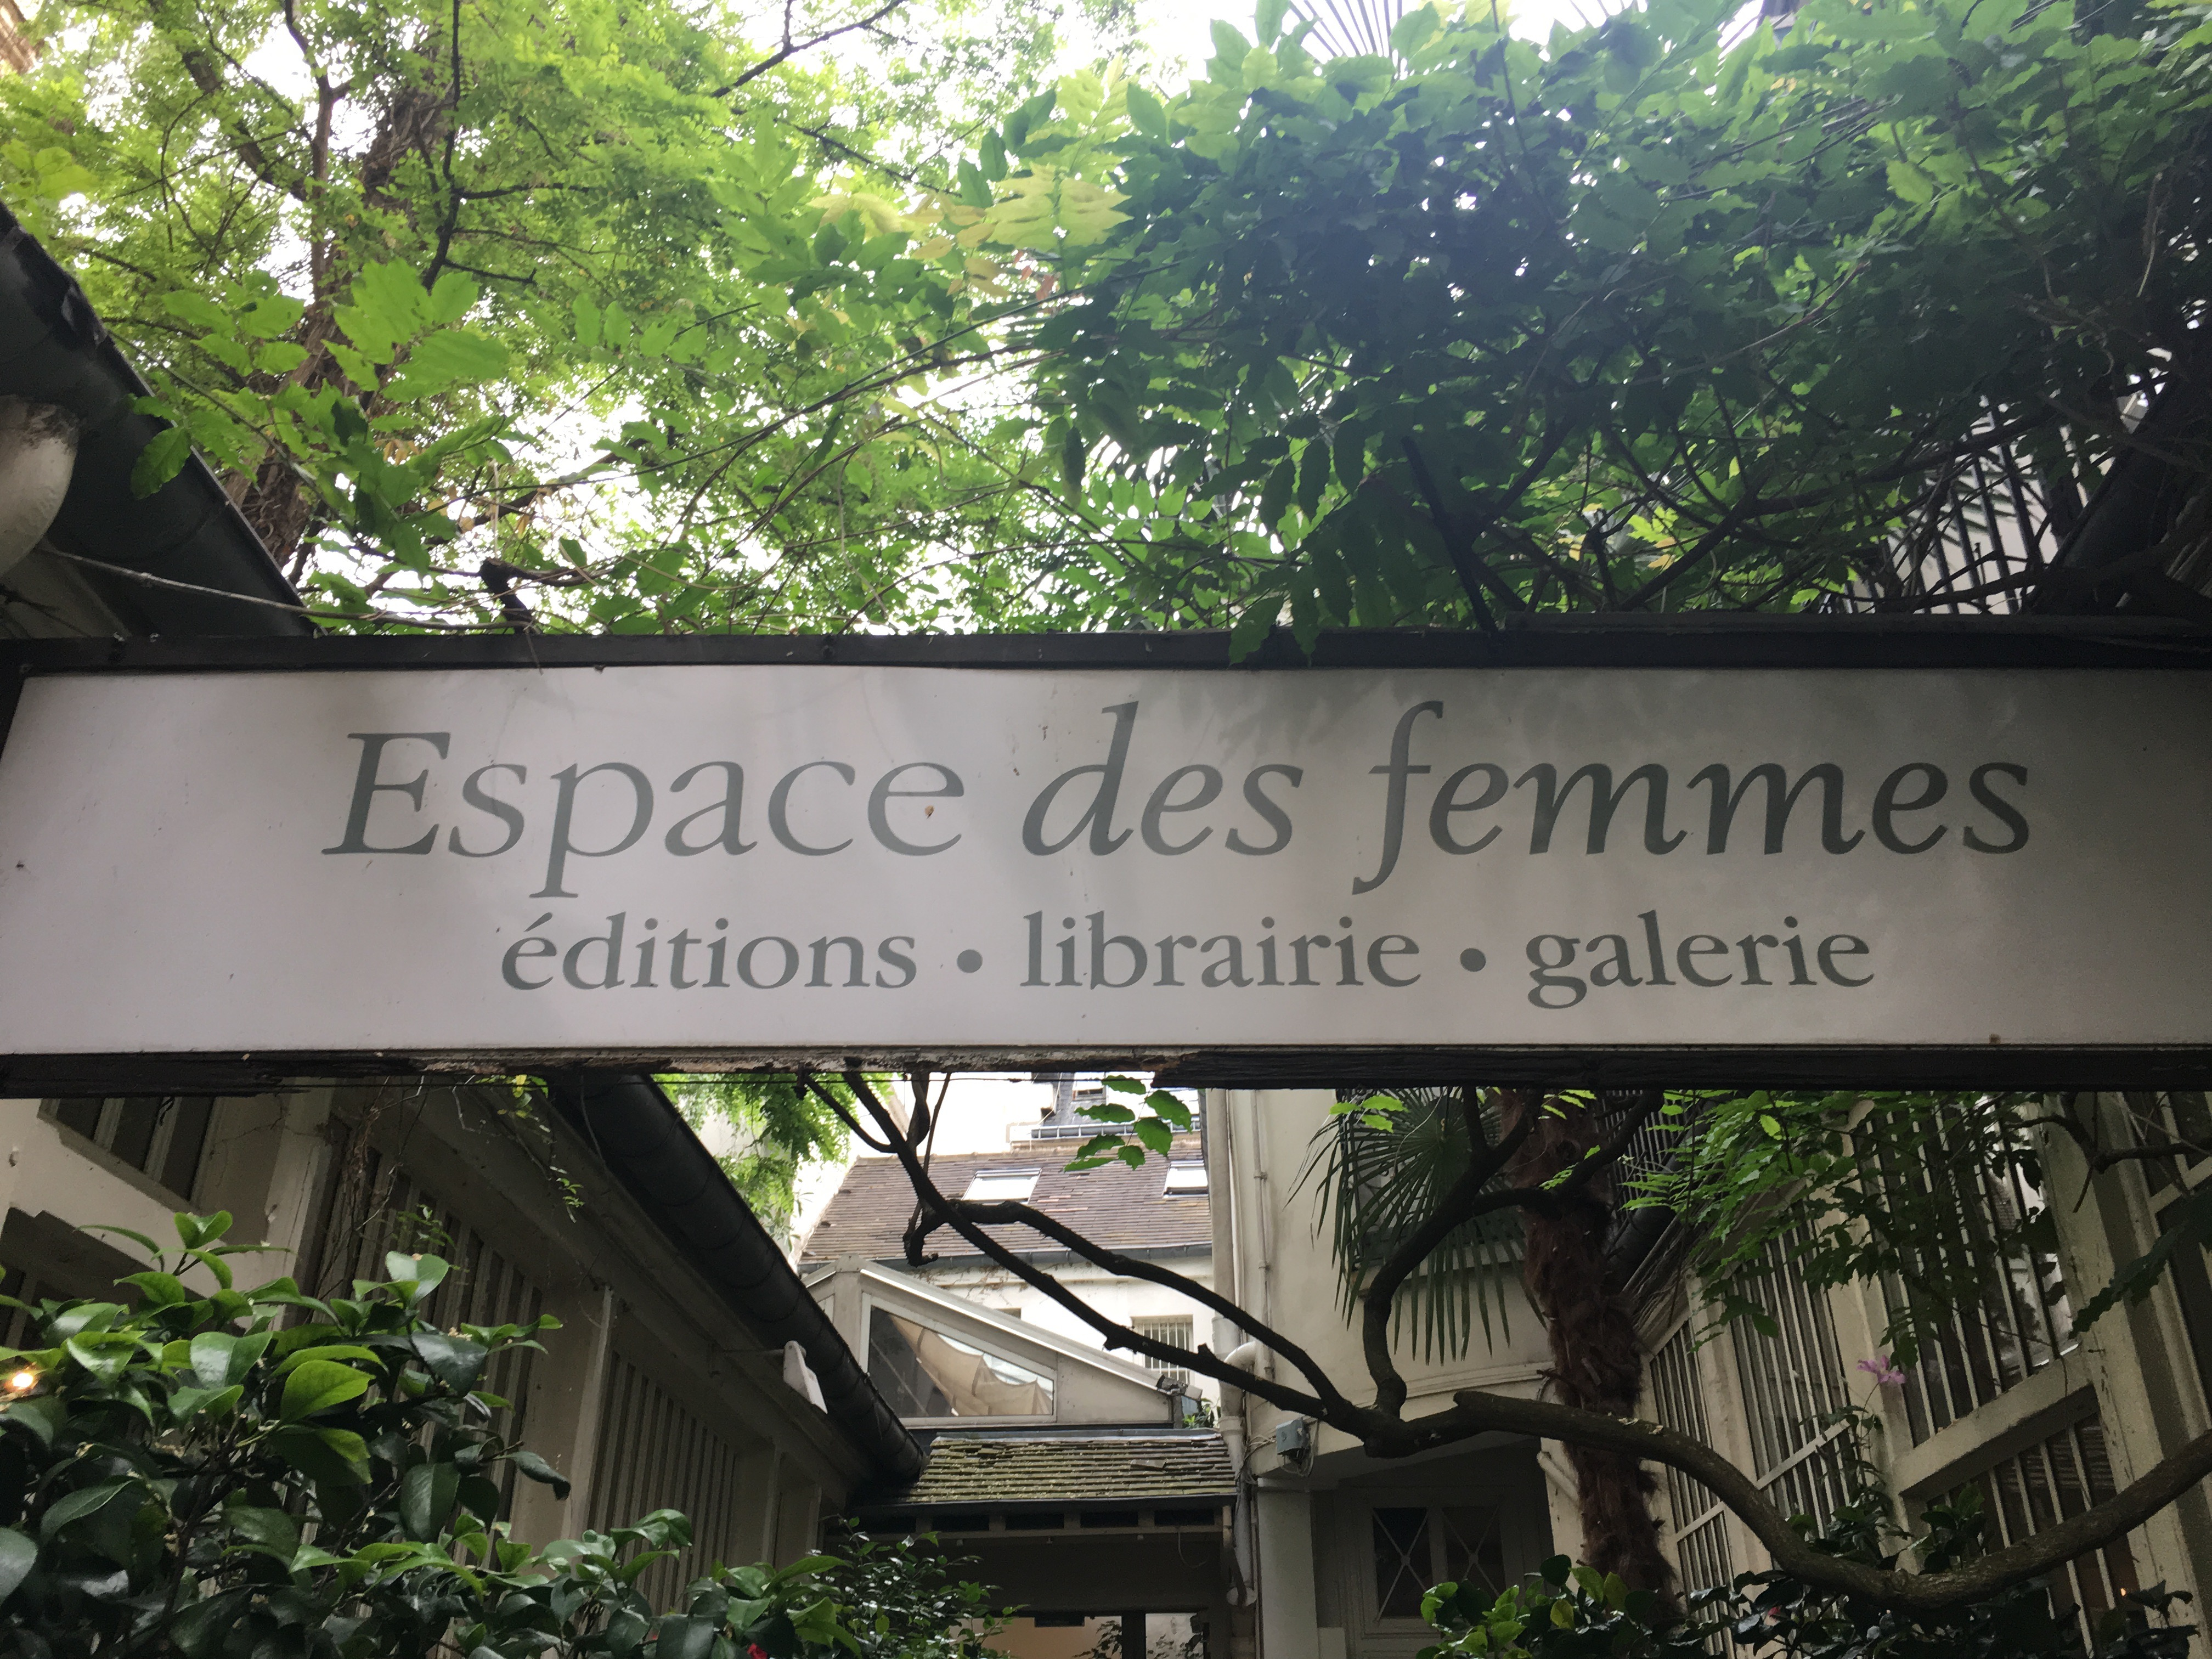 """sign that says """"Espace des femmes"""" in front of trees"""